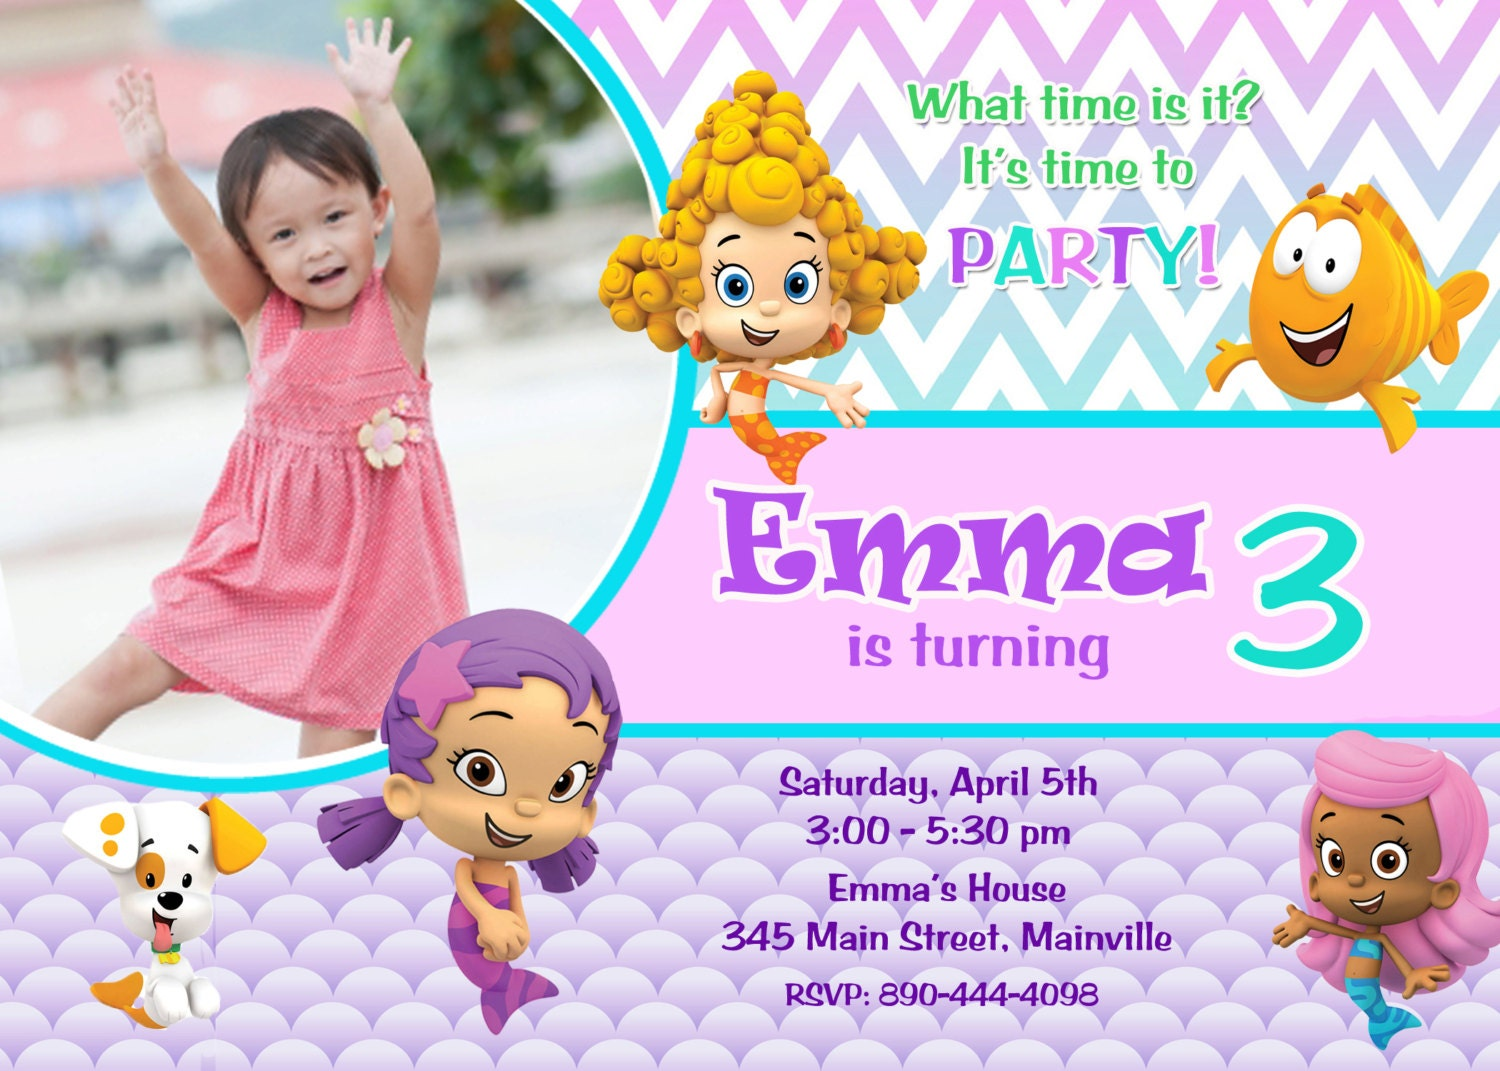 Bubble guppy oona – Bubble Guppies Party Invites